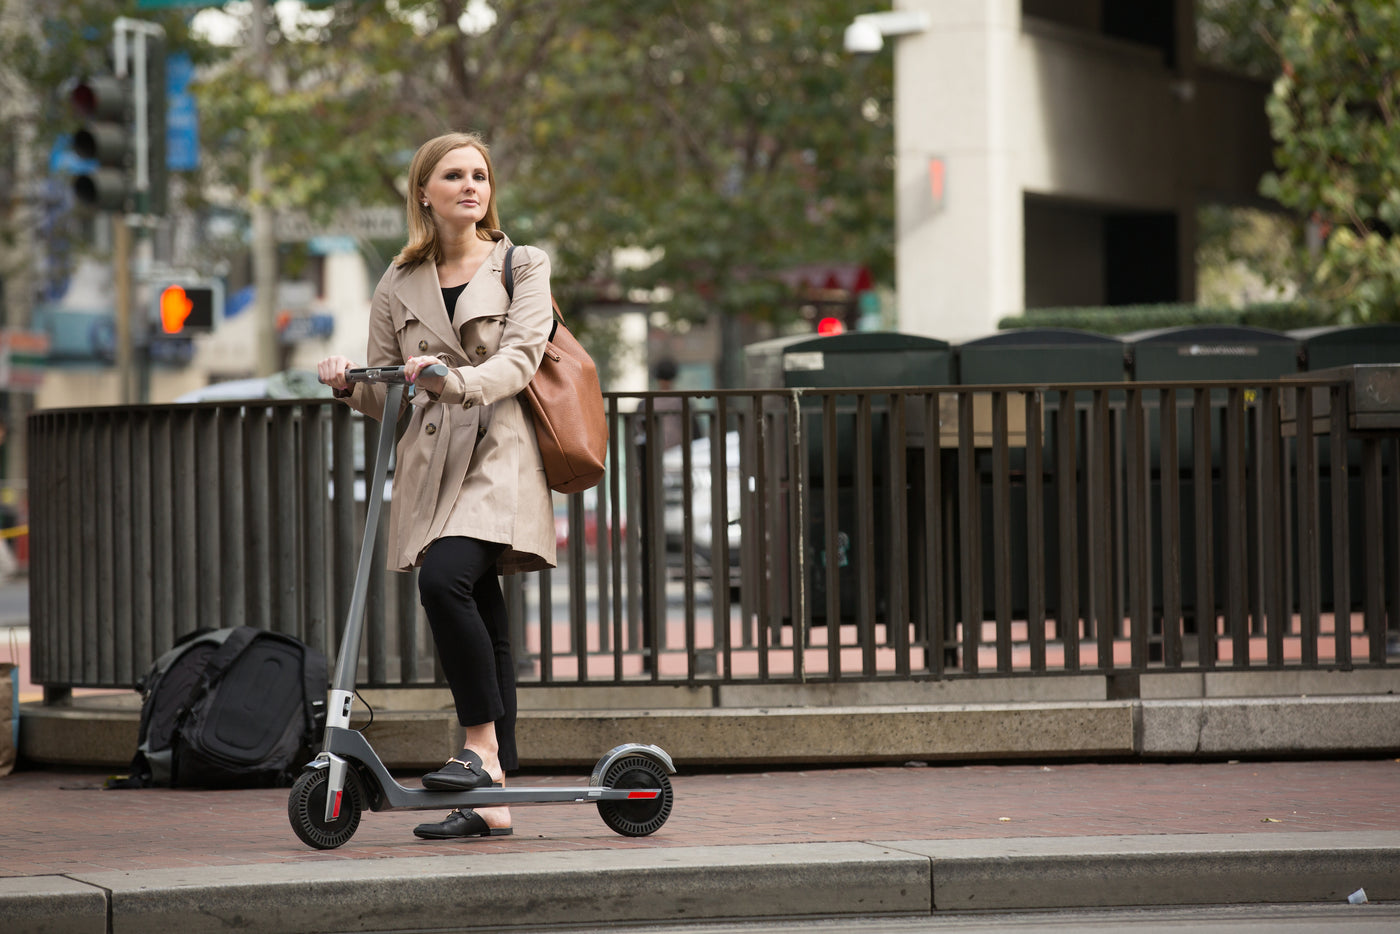 Do You Need a License to Ride an Electric Scooter?